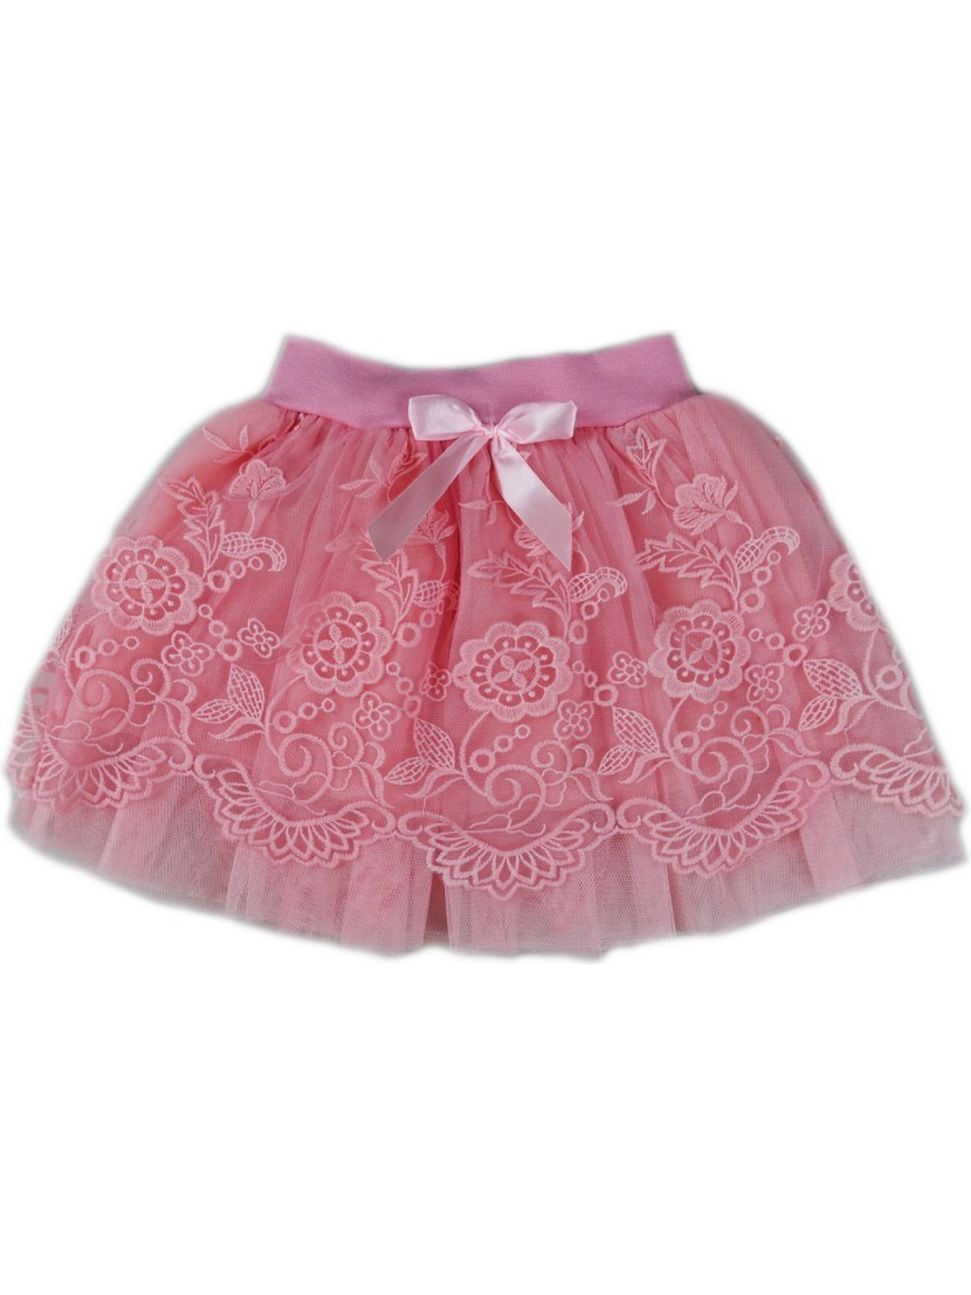 Wenchoice Girls Coral Floral Print Lace Ruffled Tutu Skirt